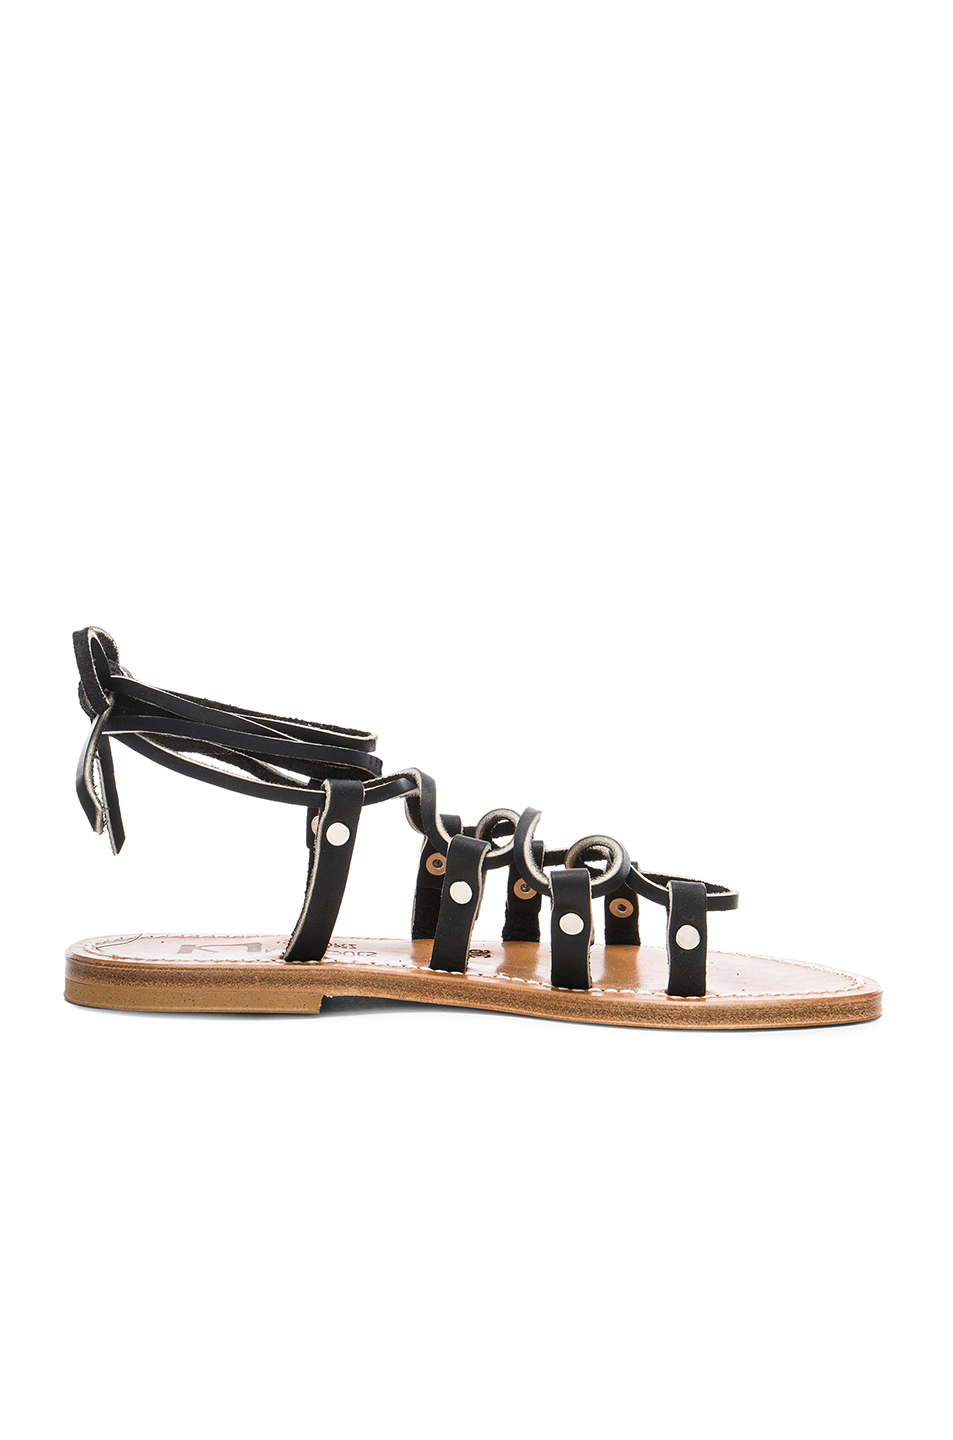 K Jacques Leather Chauvet Sandals in Black